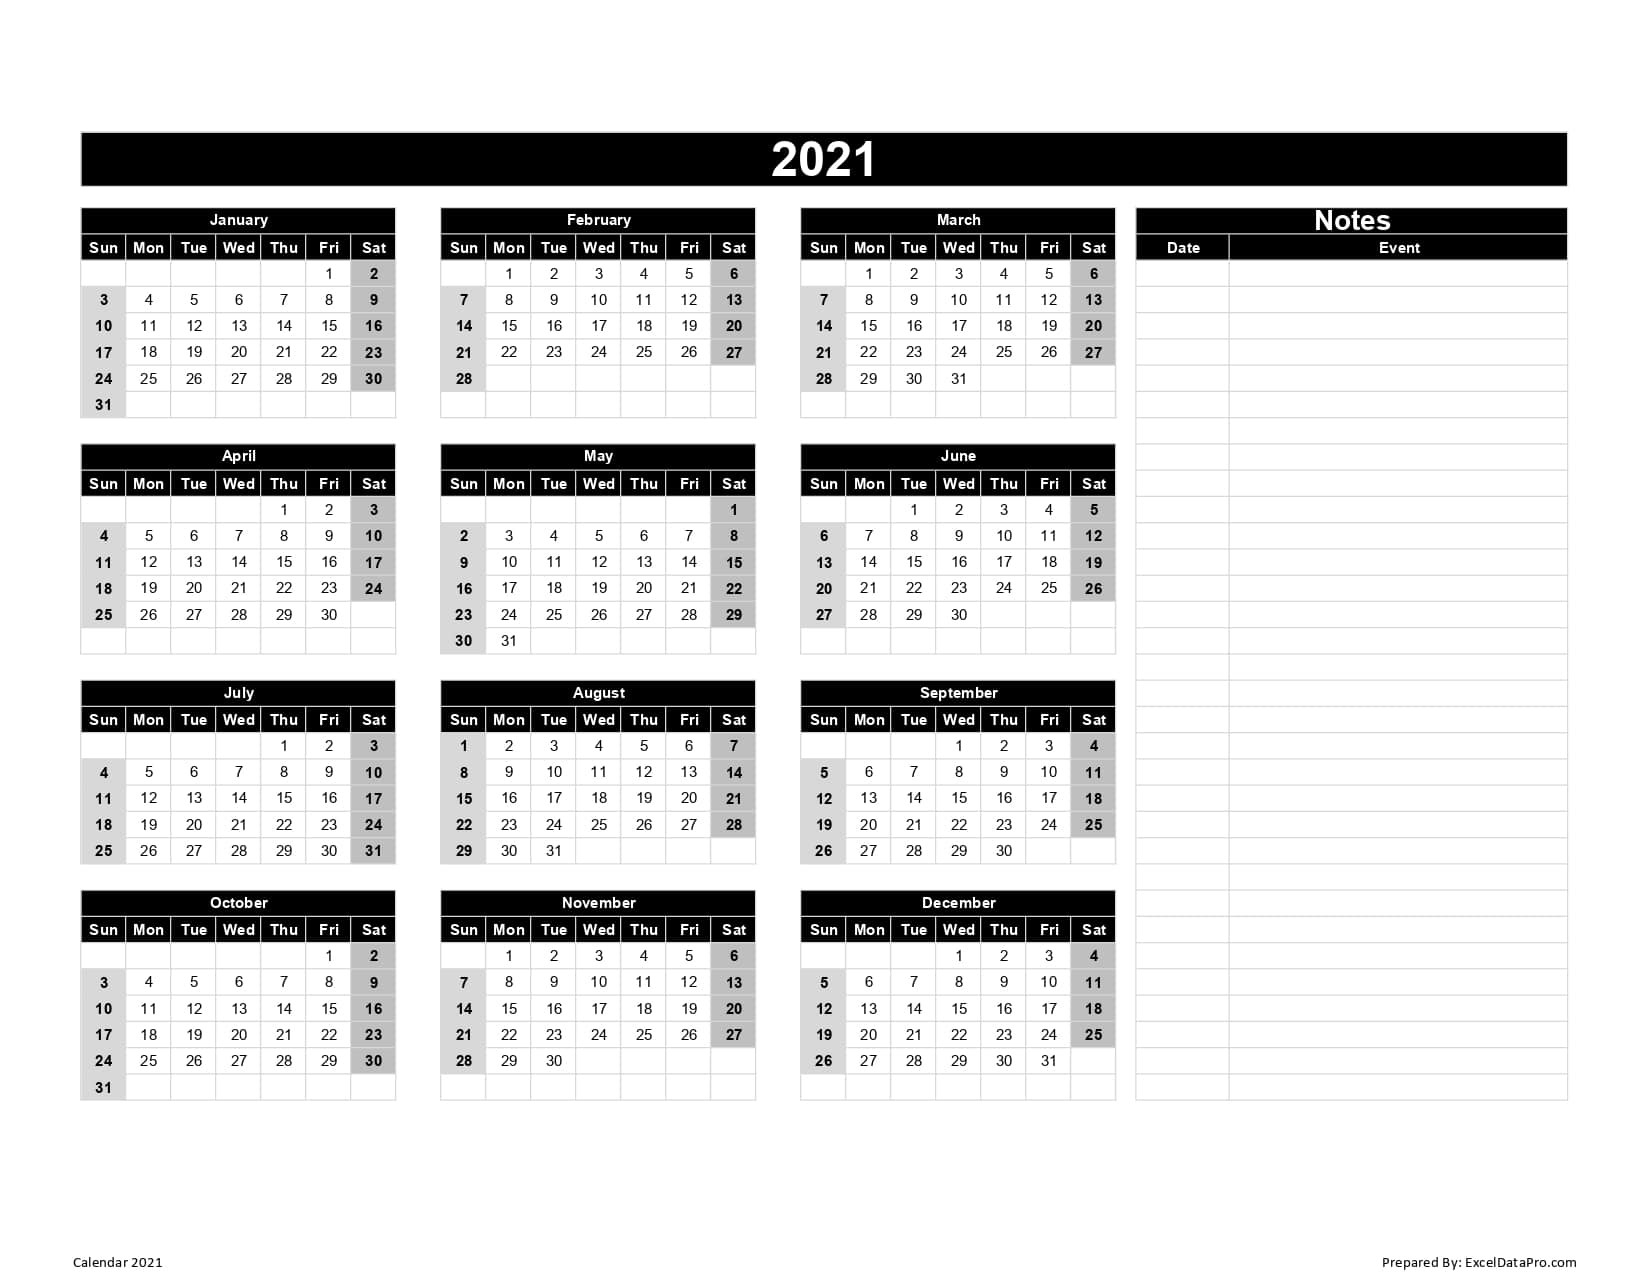 Calendar 2021 Excel Templates, Printable Pdfs & Images  Full Page Printable Monthly Calendar 2021